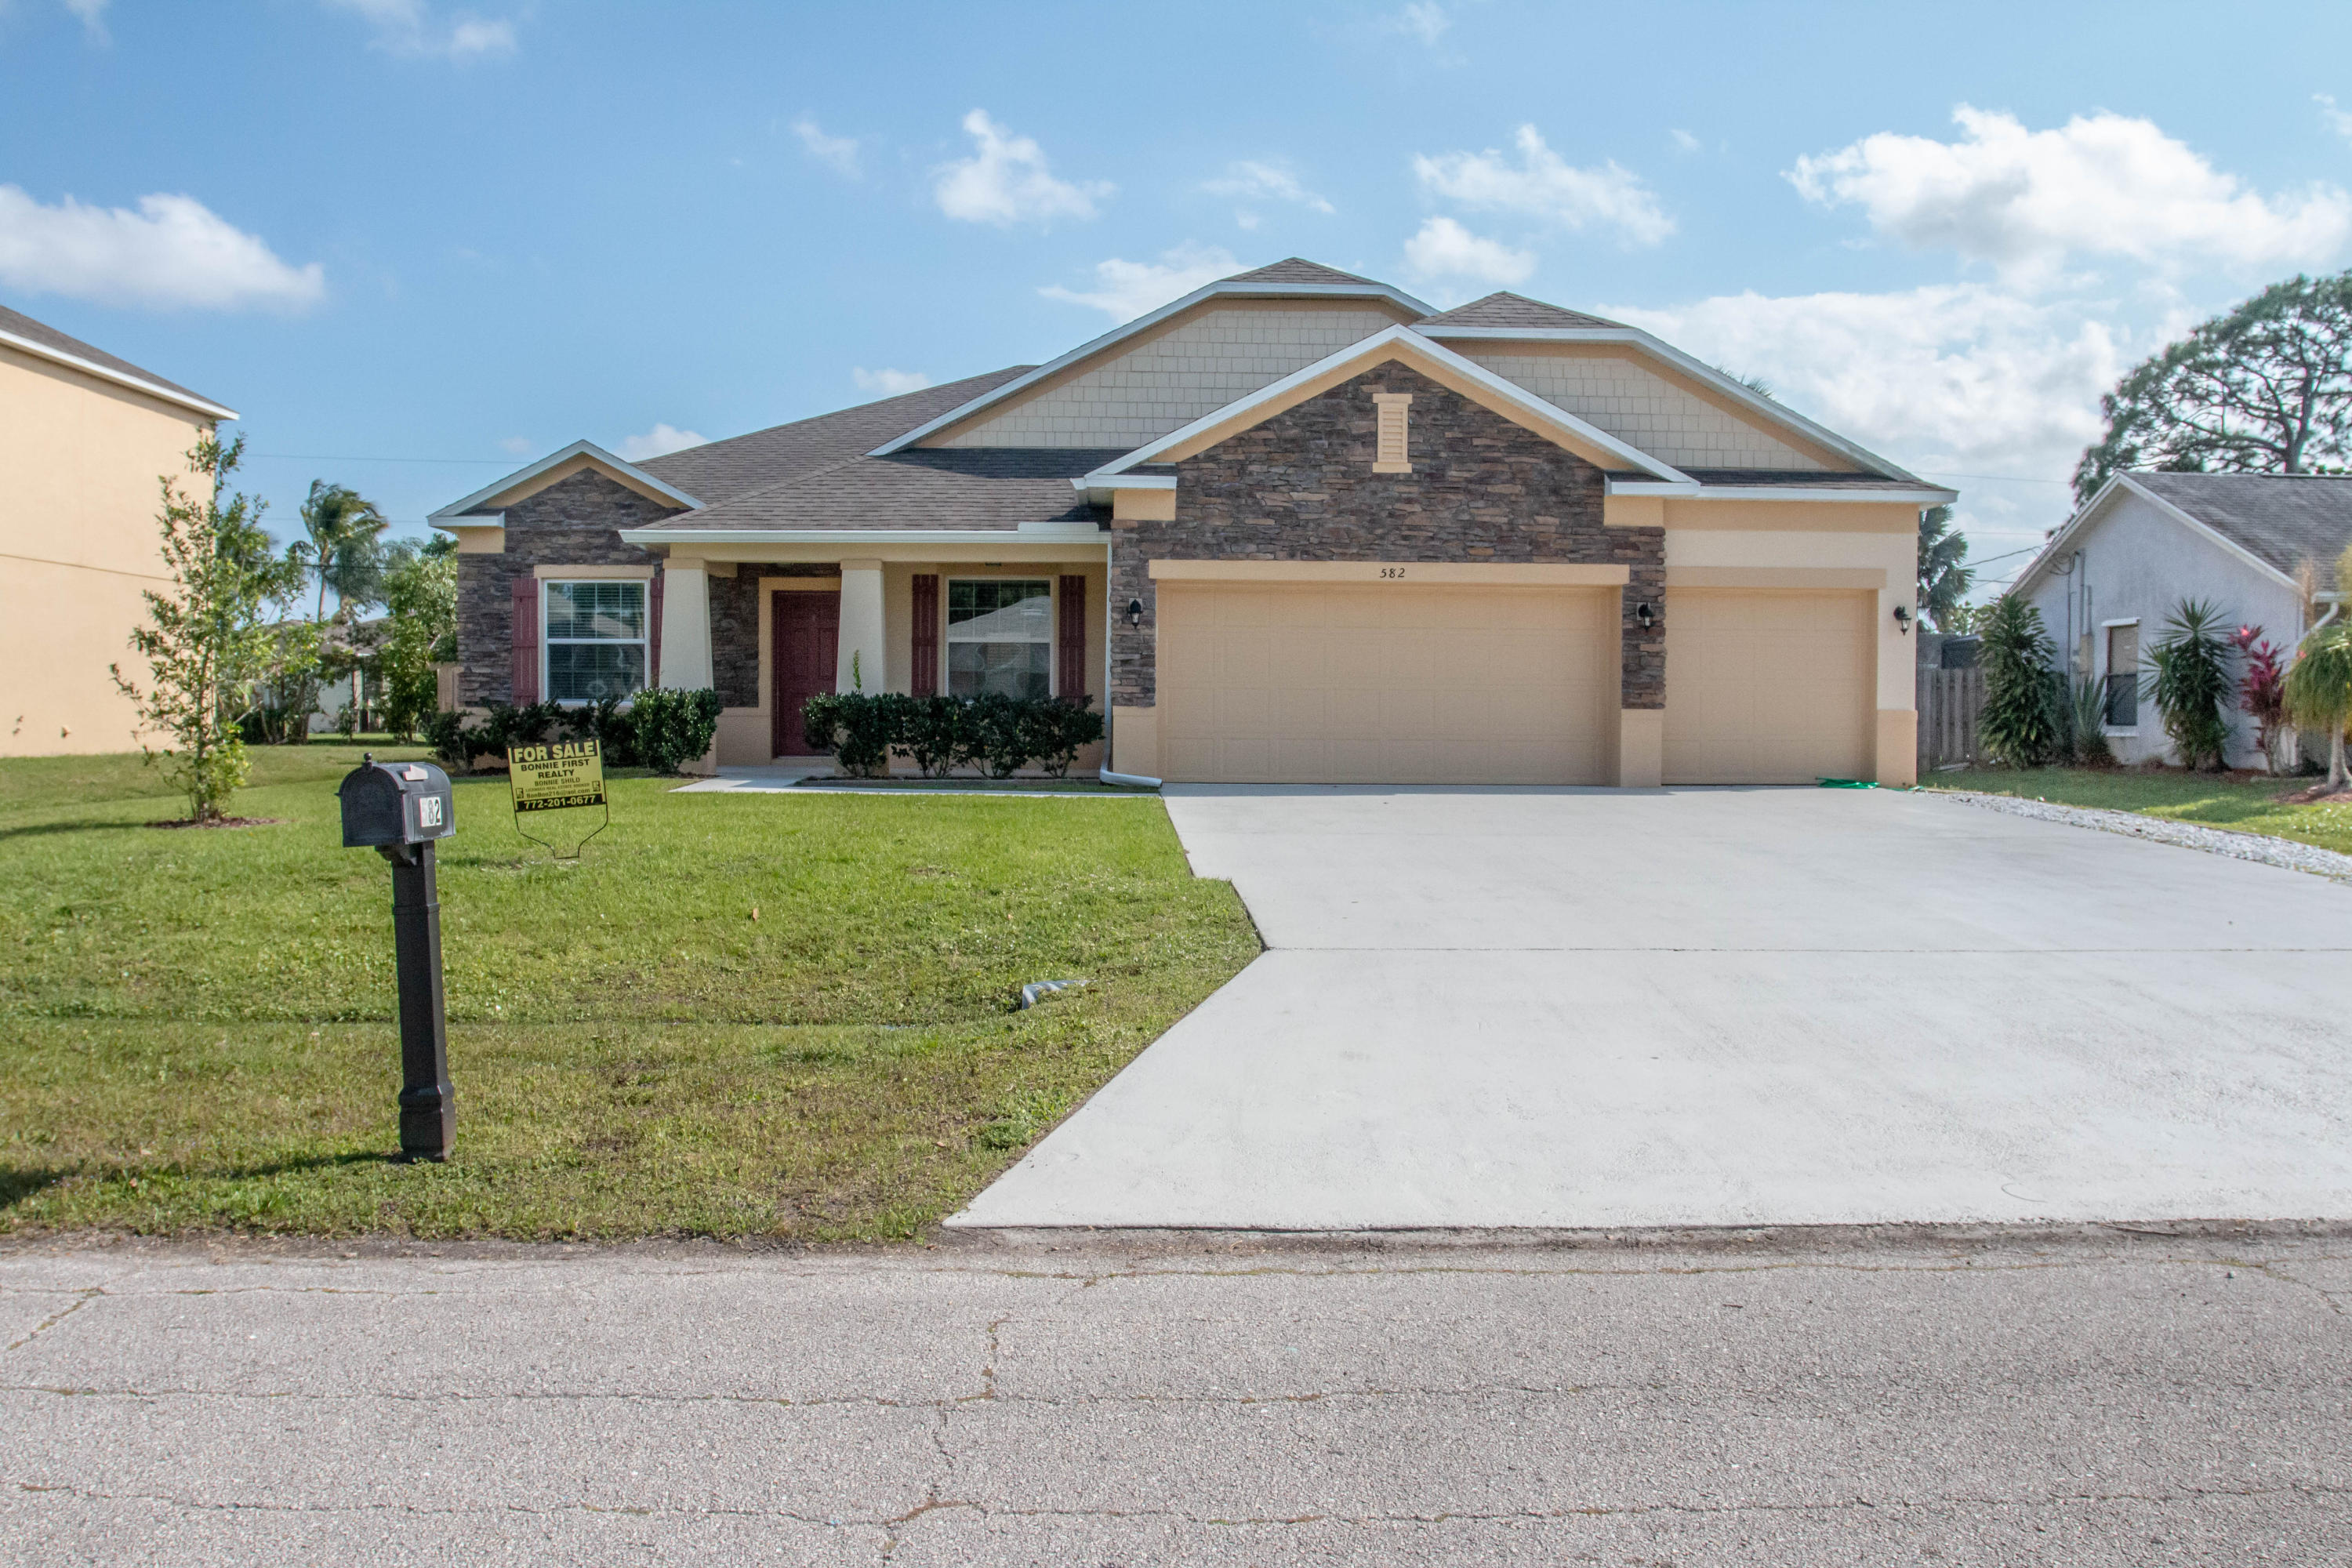 582 SW Twig Avenue, Port Saint Lucie, Florida